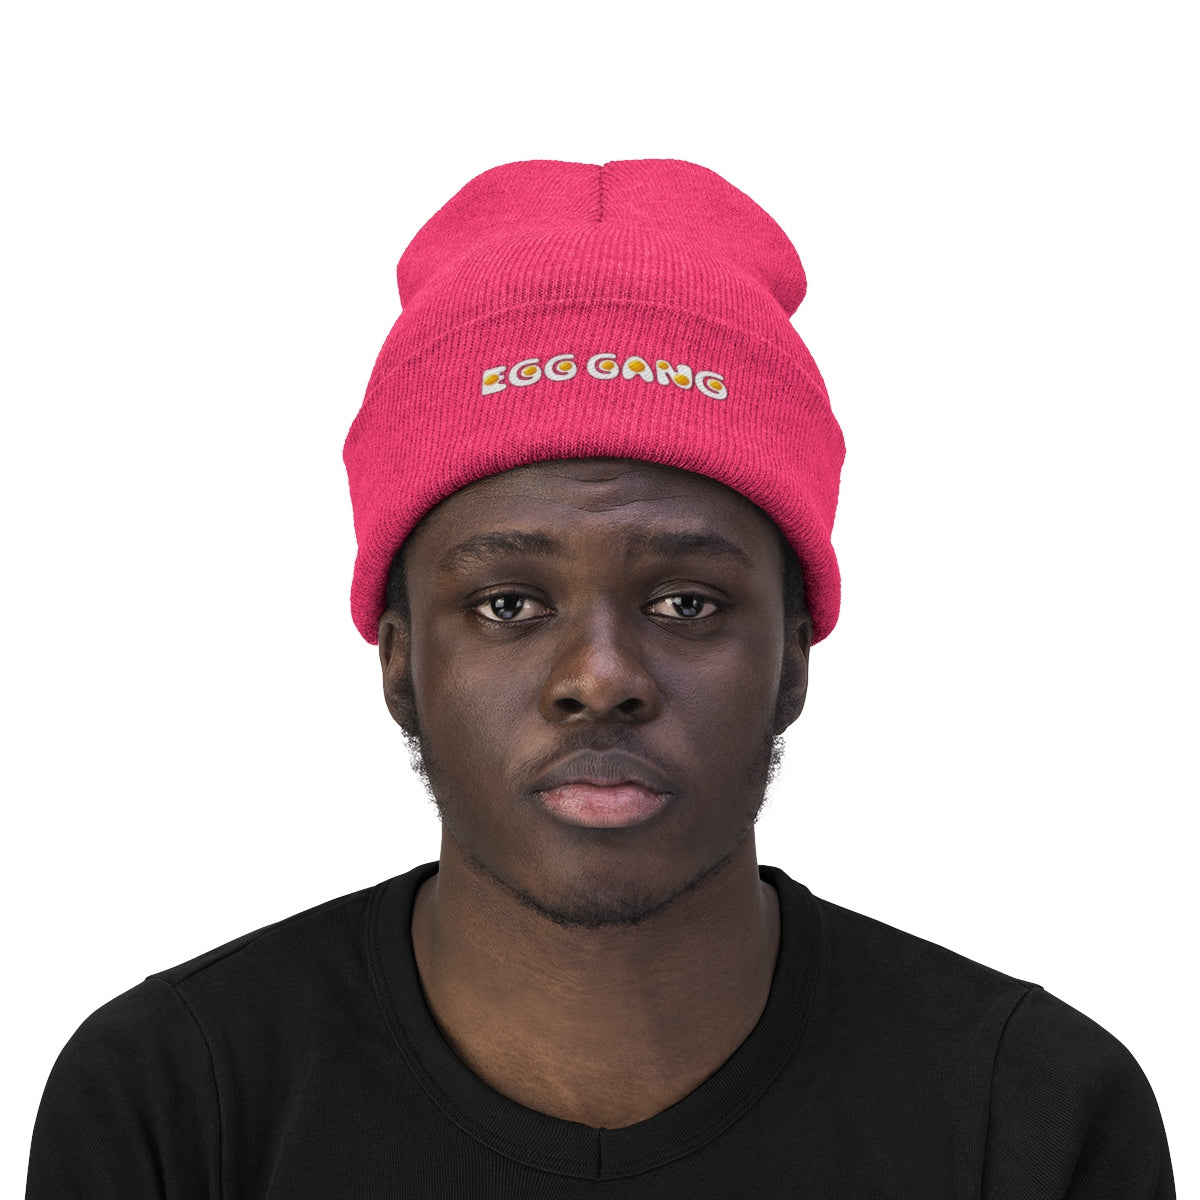 Egg Gang Mean Meme Beanie